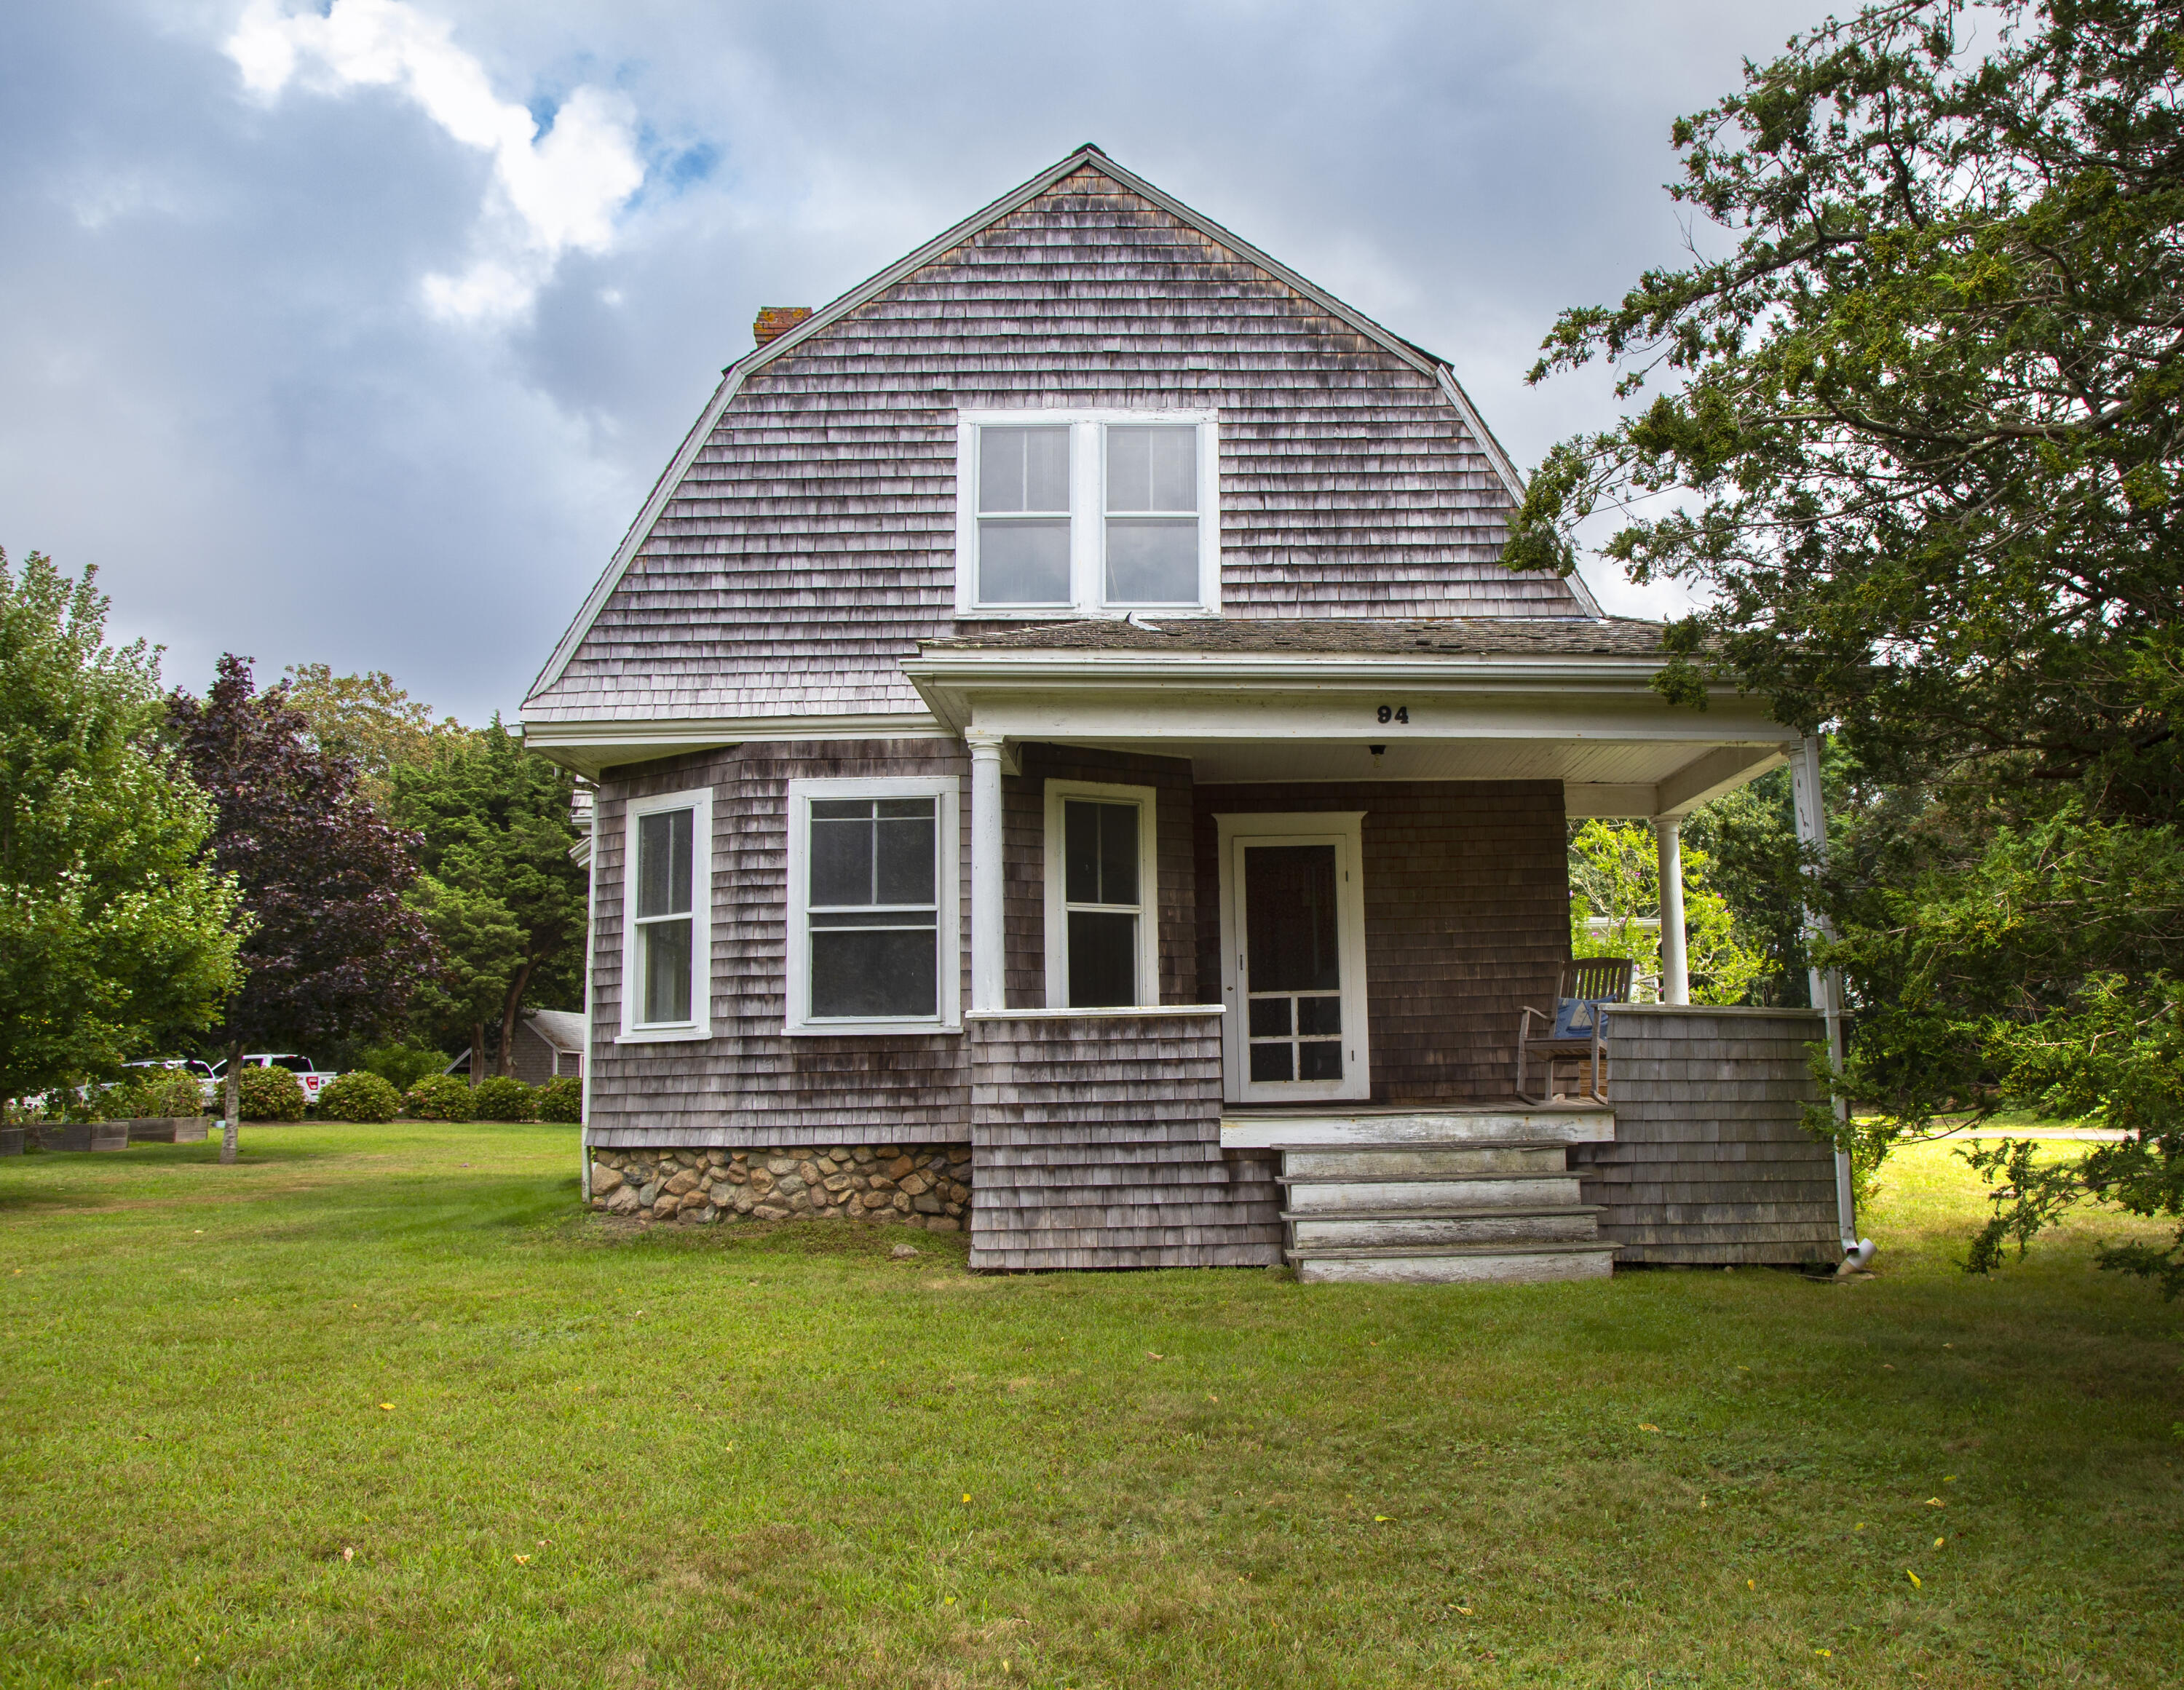 click to view more details 94 Corporation Road, Dennis, MA 02638